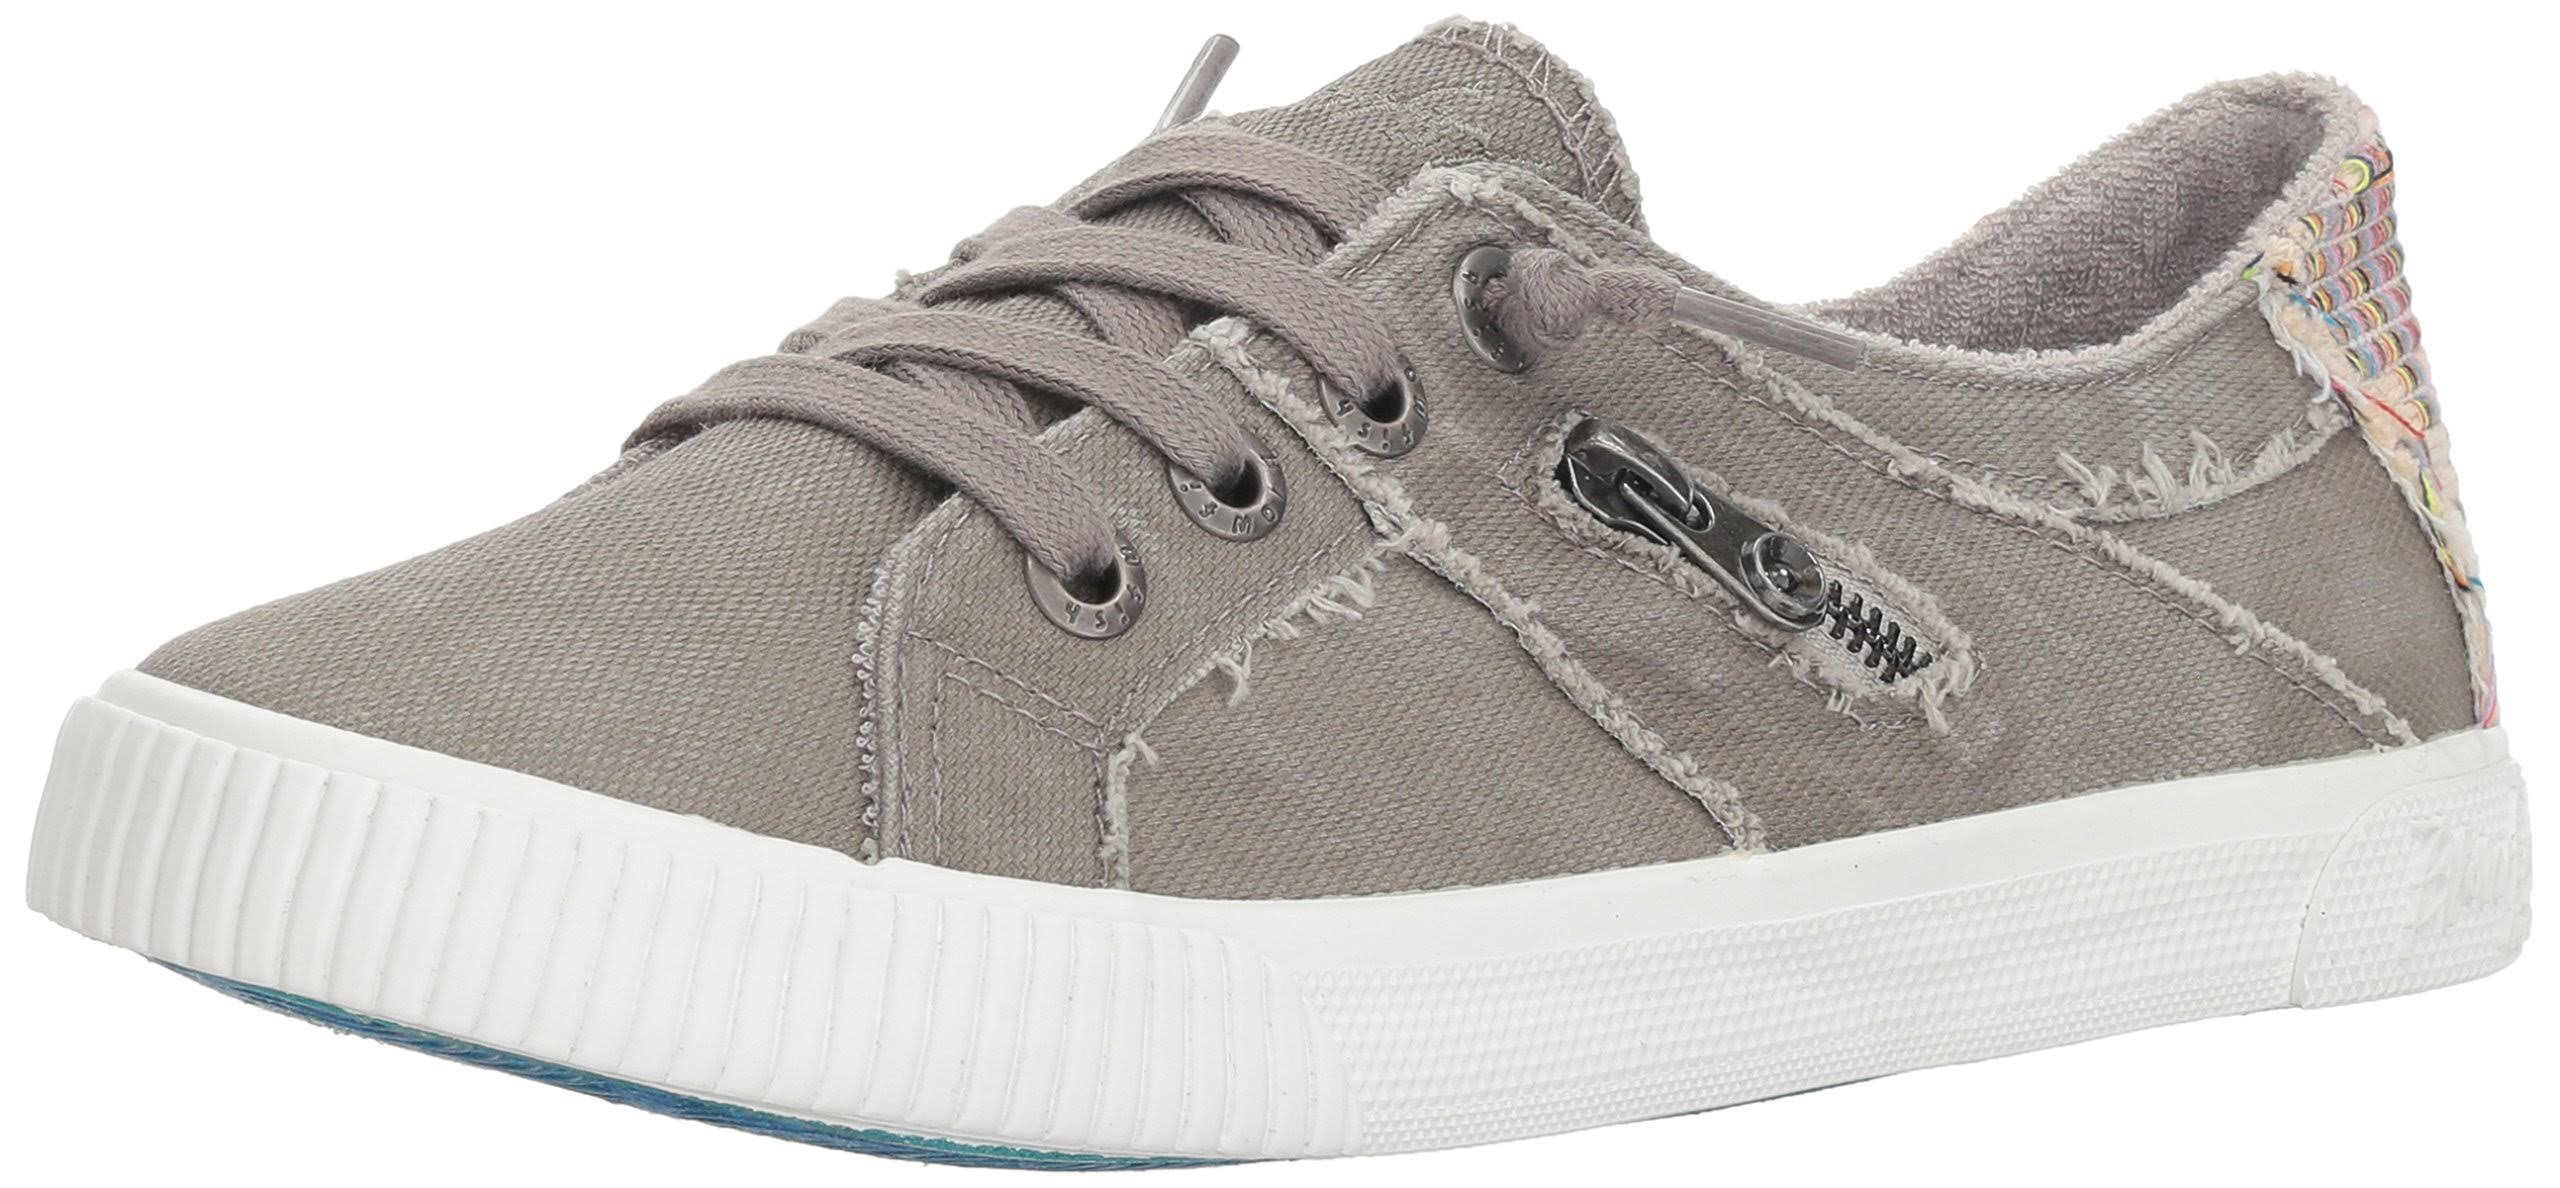 Blowfish Women's Fruit Sneakers - Wolf Gray, Size 9